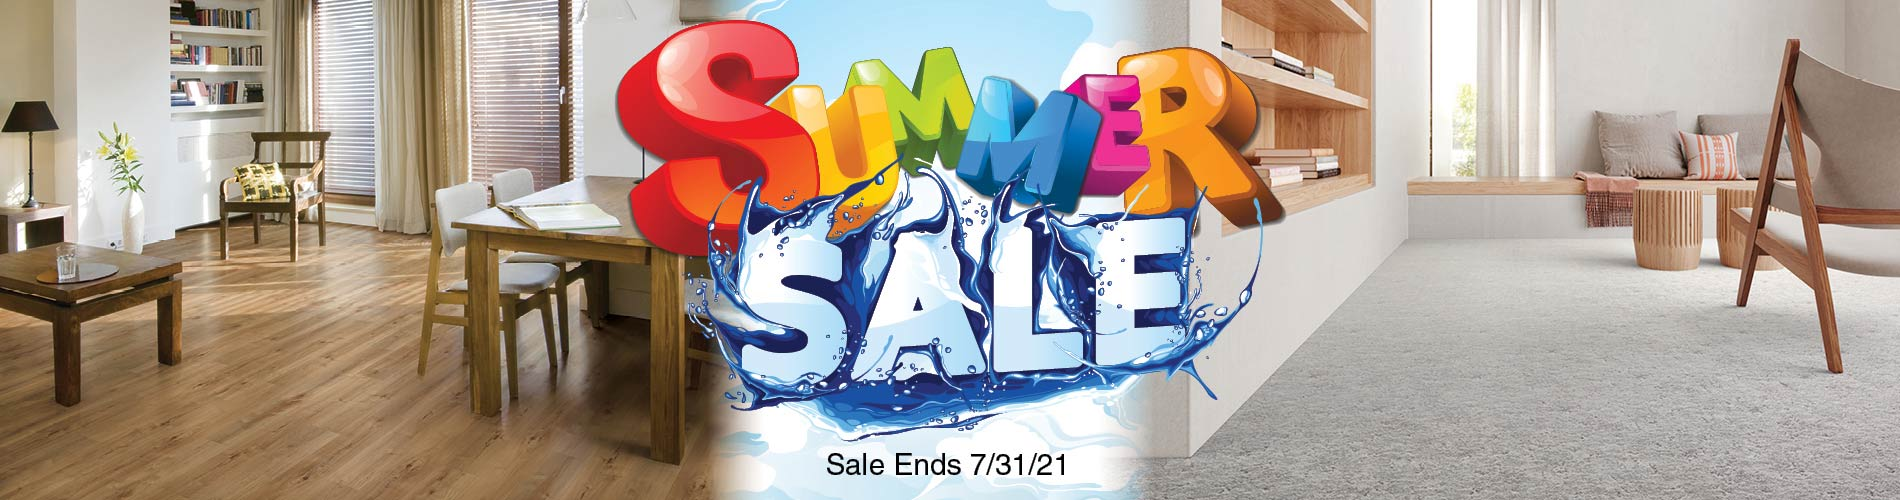 Summer Sale Going On Now!